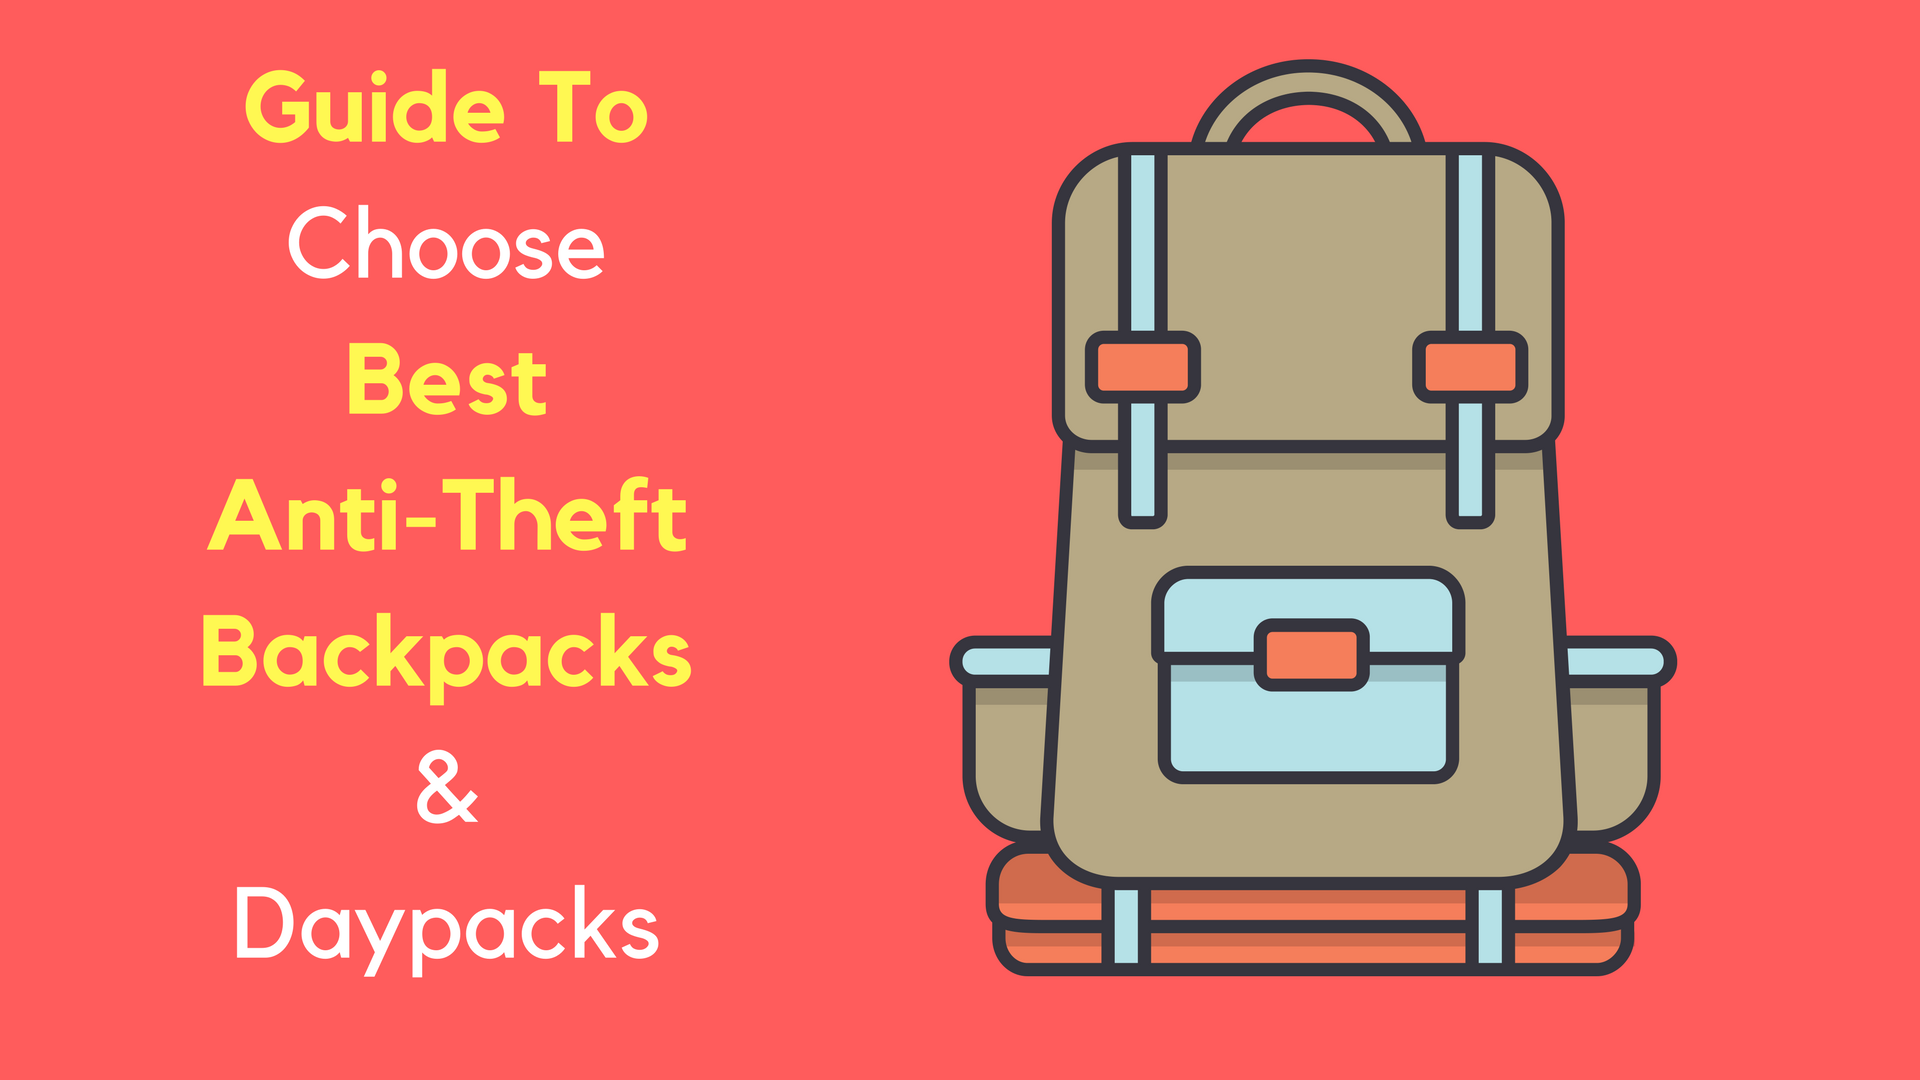 best anti-theft backpacks